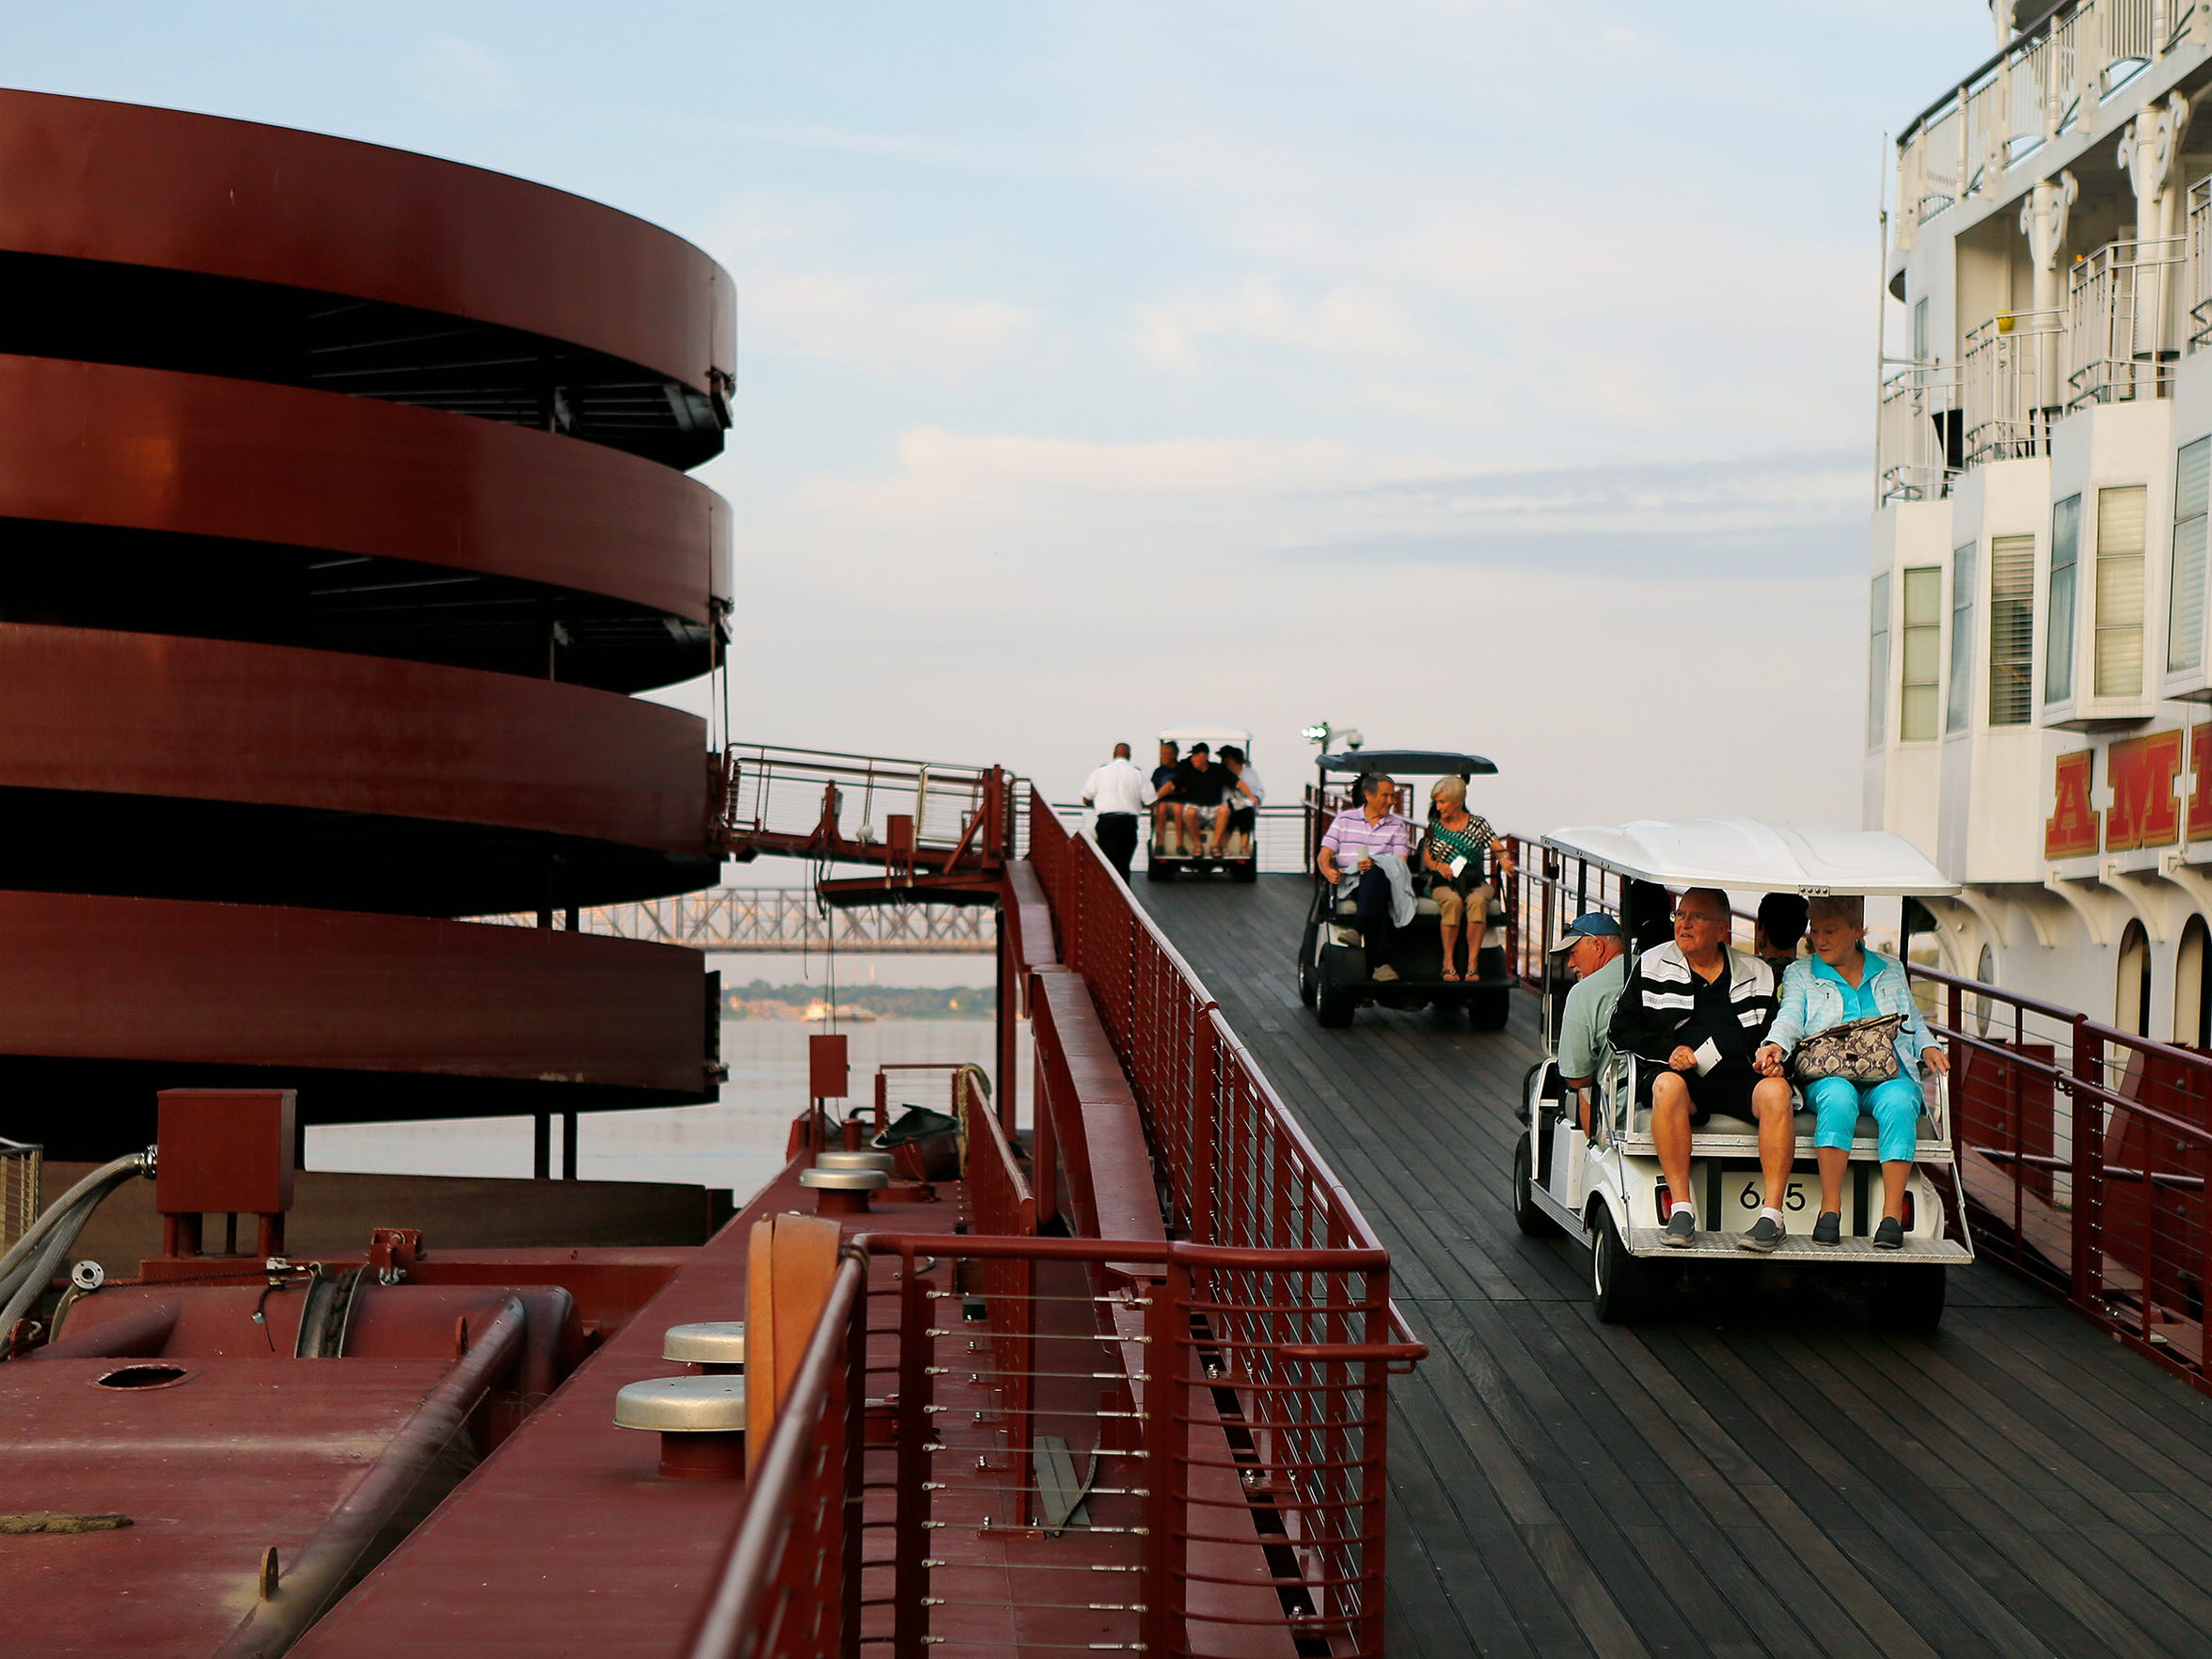 Passengers of the American Queen steamboat are shuttled up the ramp at Beale Street Landing in Memphis. The river boat is estimated to have a nearly $90 million impact on the city of Memphis.